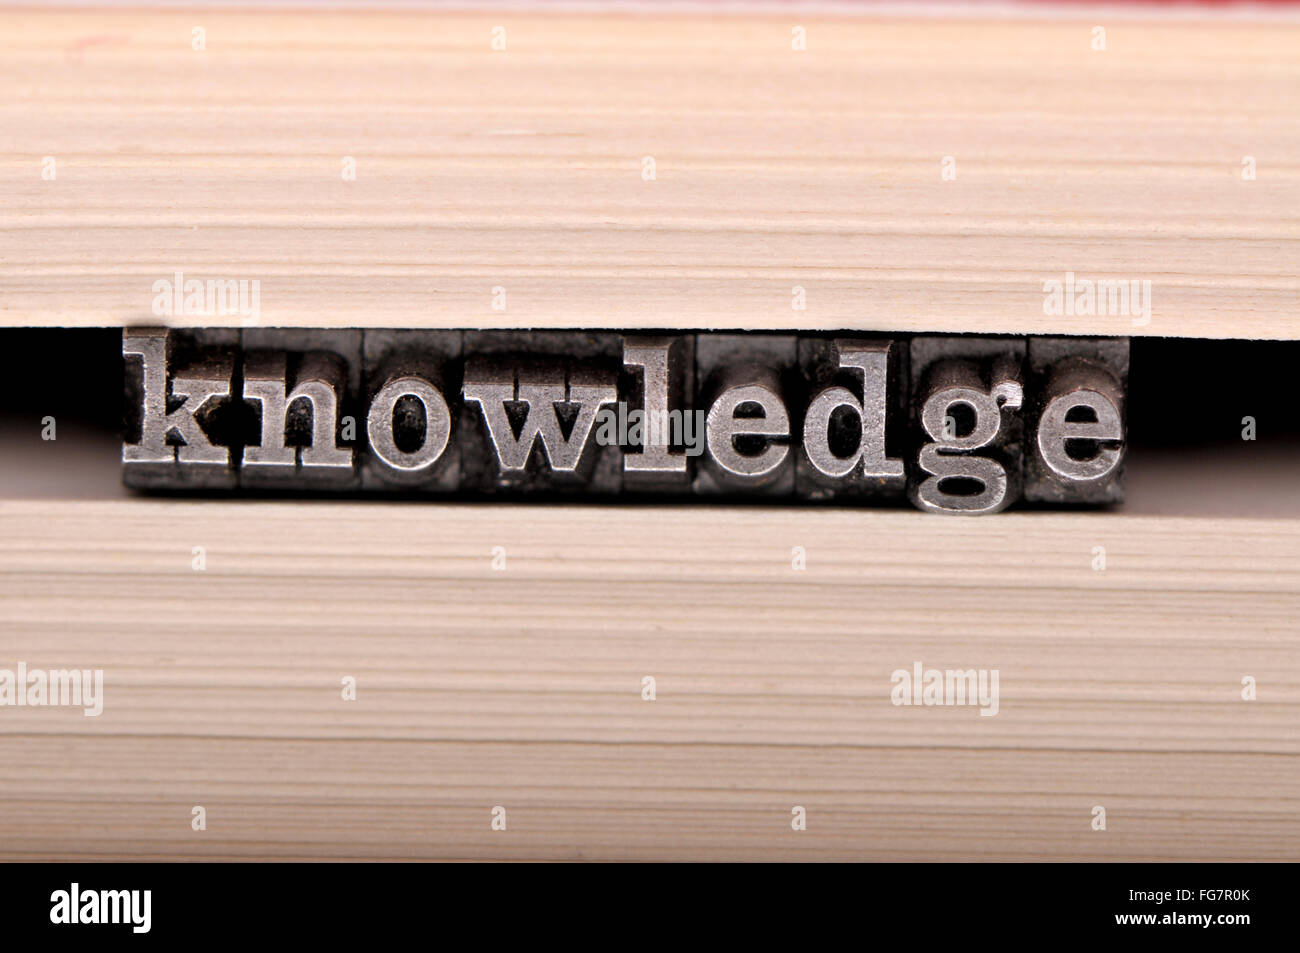 Letterpress characters spelling out 'knowledge' in the pages of a book - Stock Image